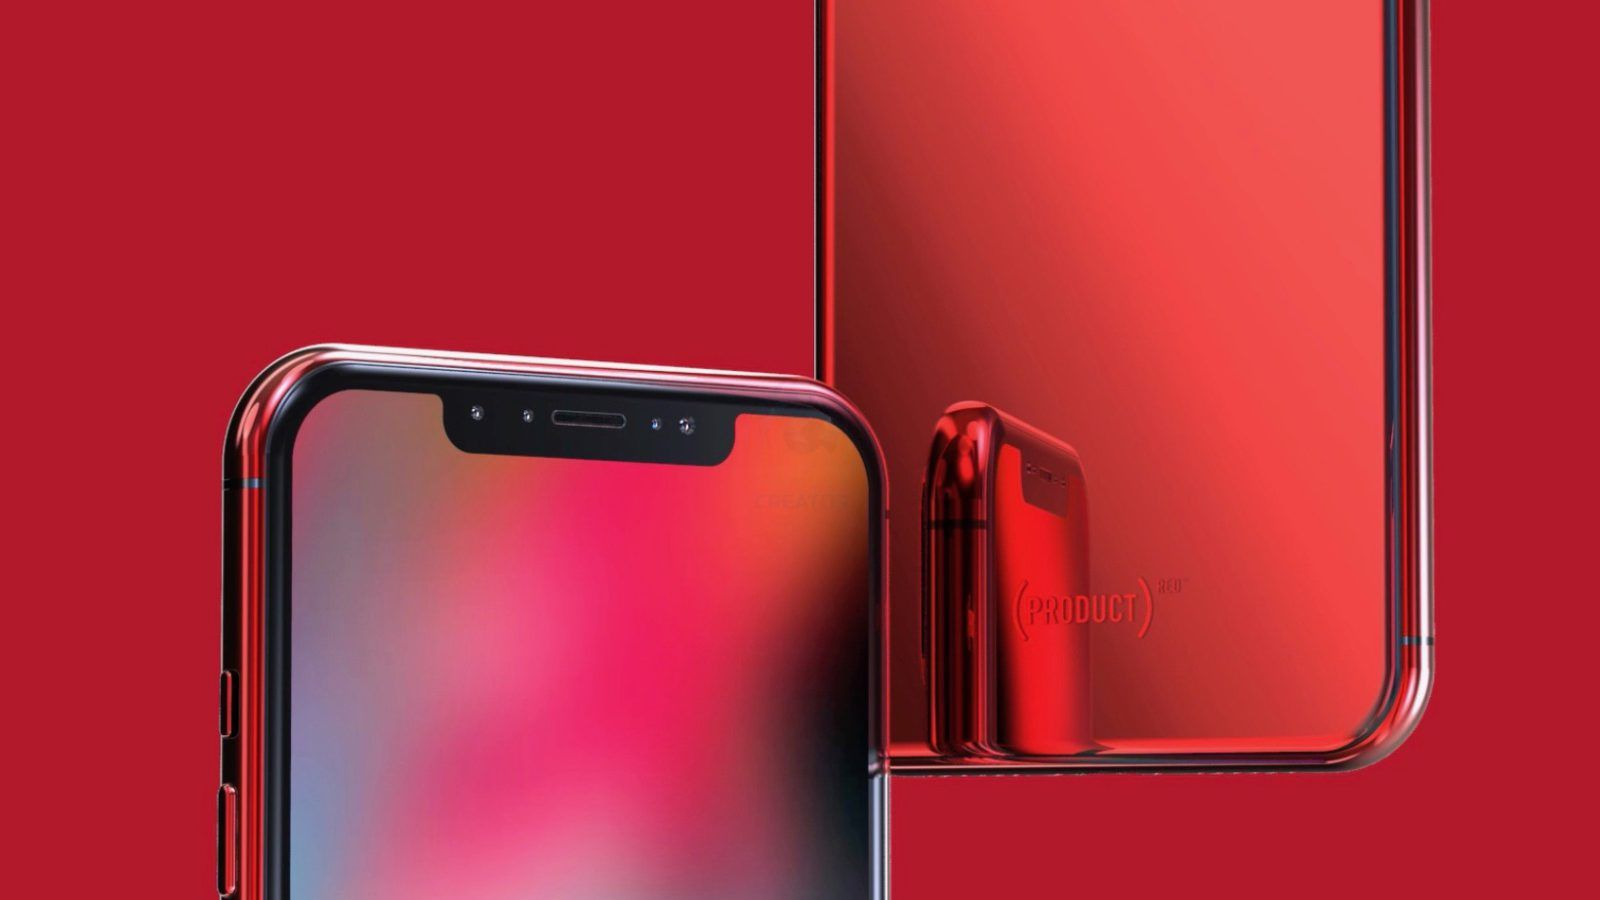 Concept imagines productred iphone x iphone x plus